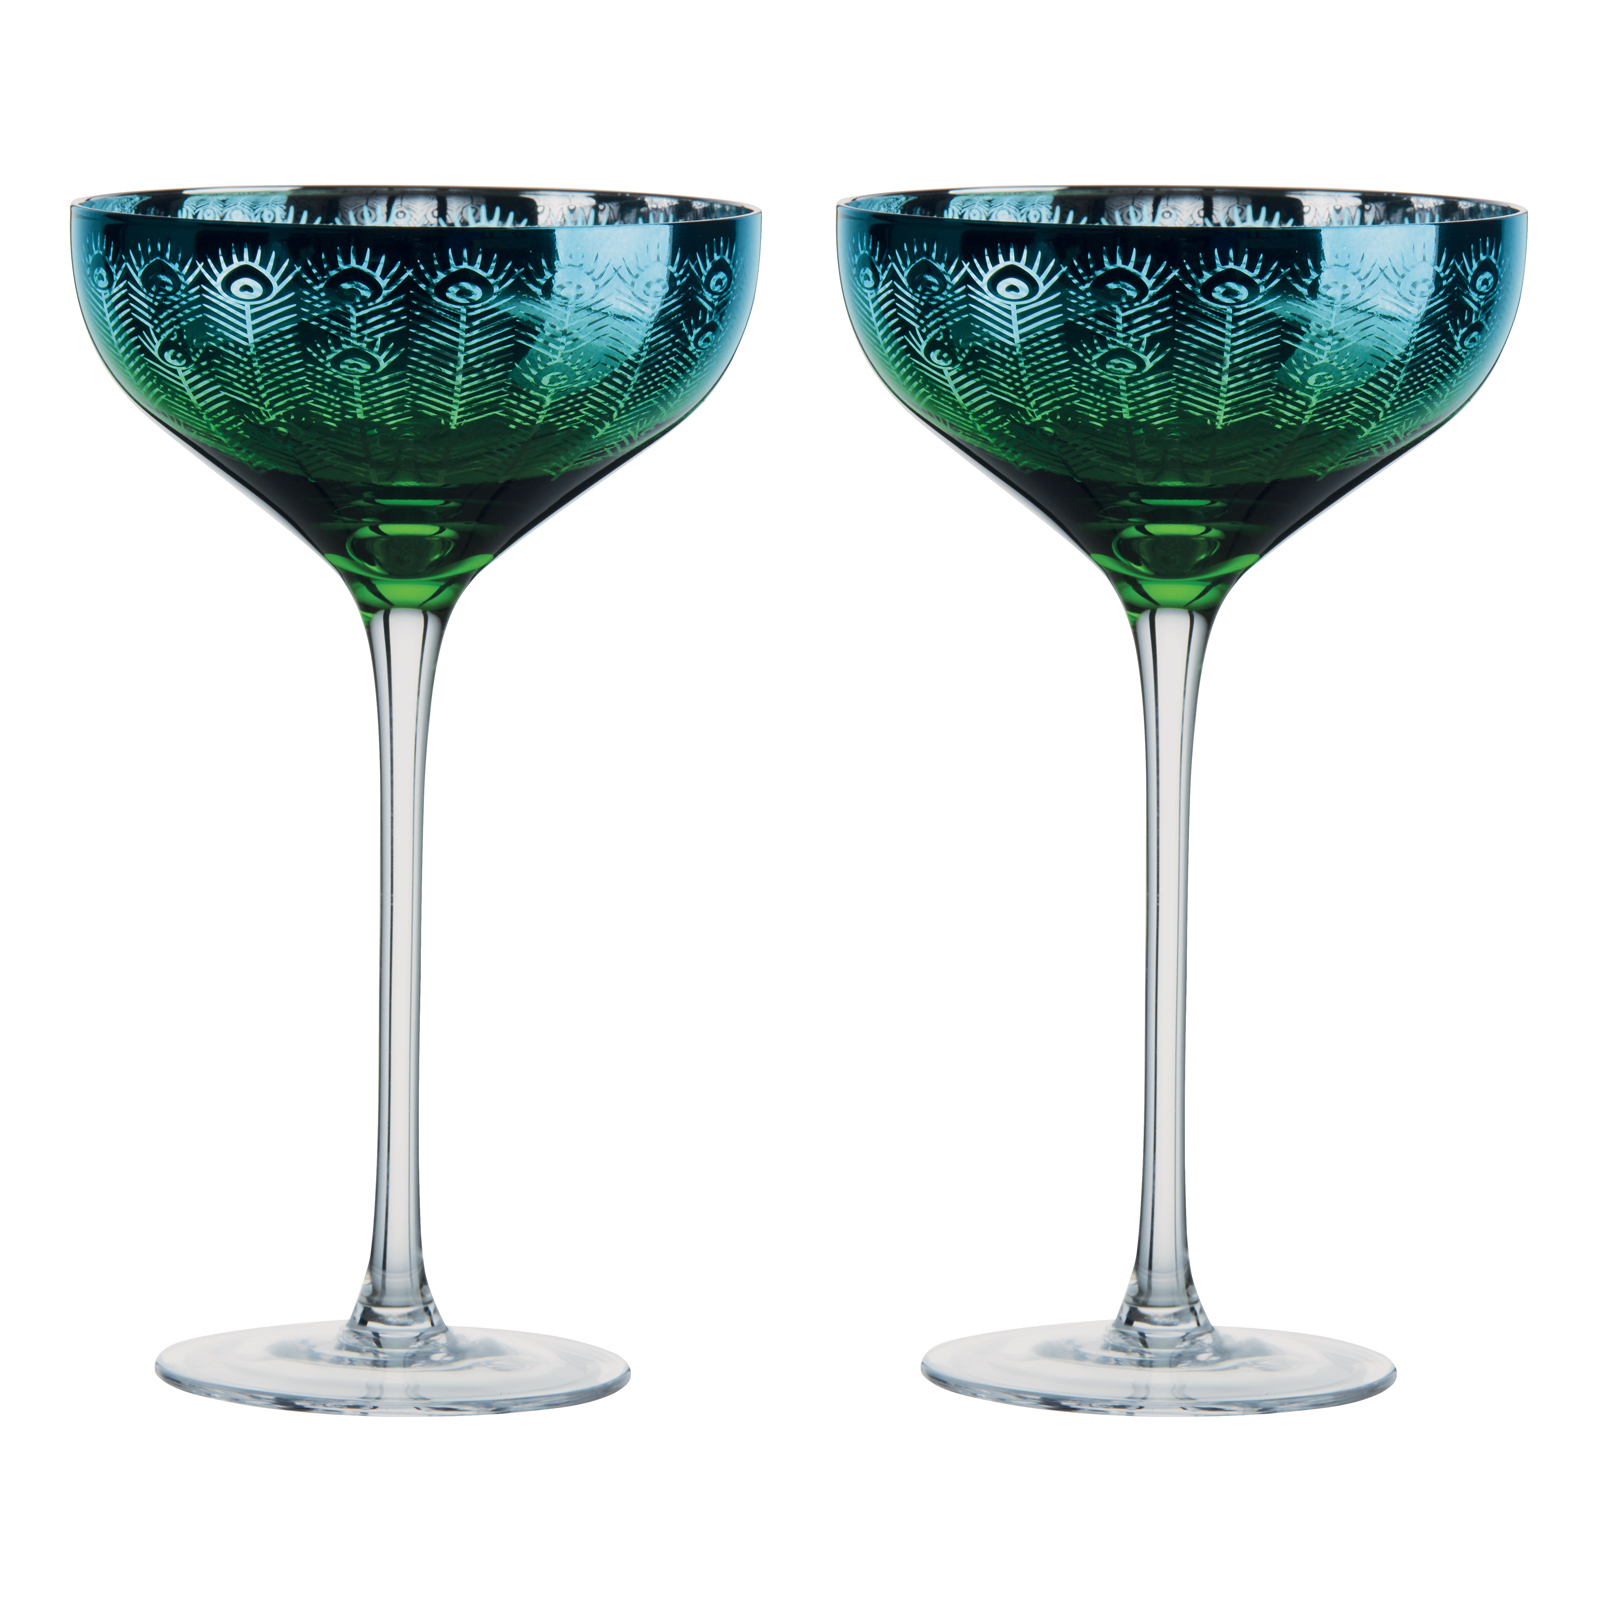 Set of 2 Peacock Champagne Saucers by Artland